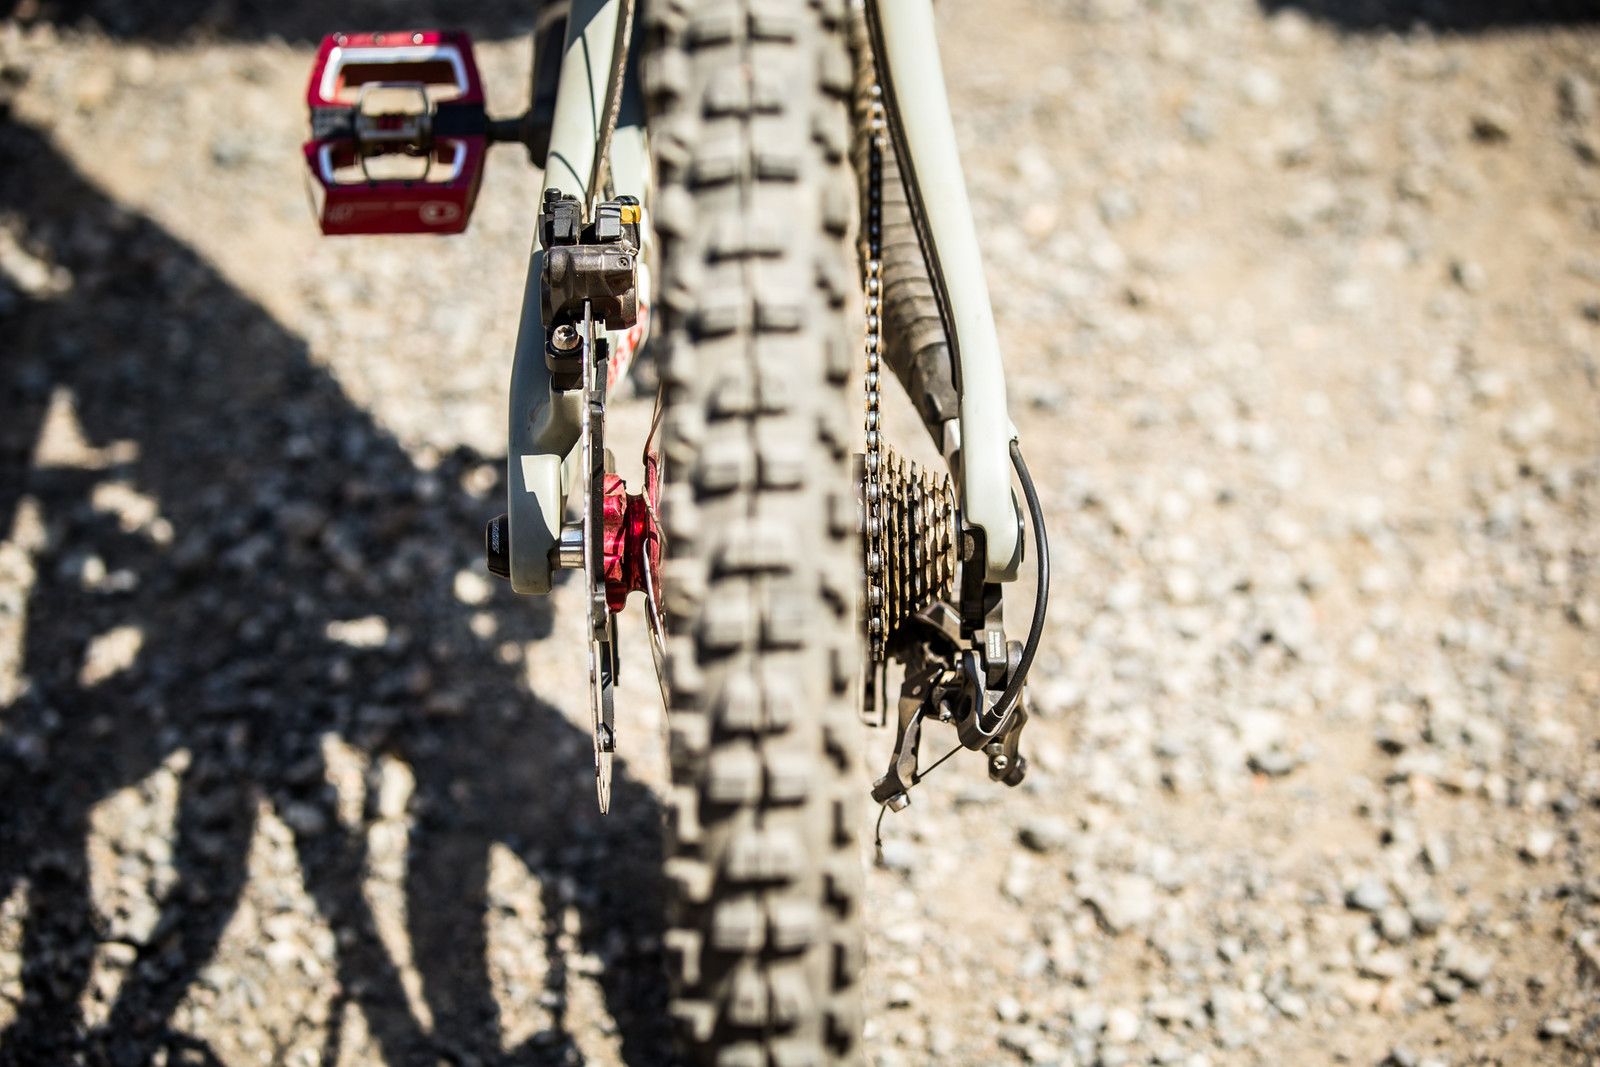 Rear Components - WINNING BIKE - Loris Vergier's Santa Cruz V10cc 29 - Mountain Biking Pictures - Vital MTB